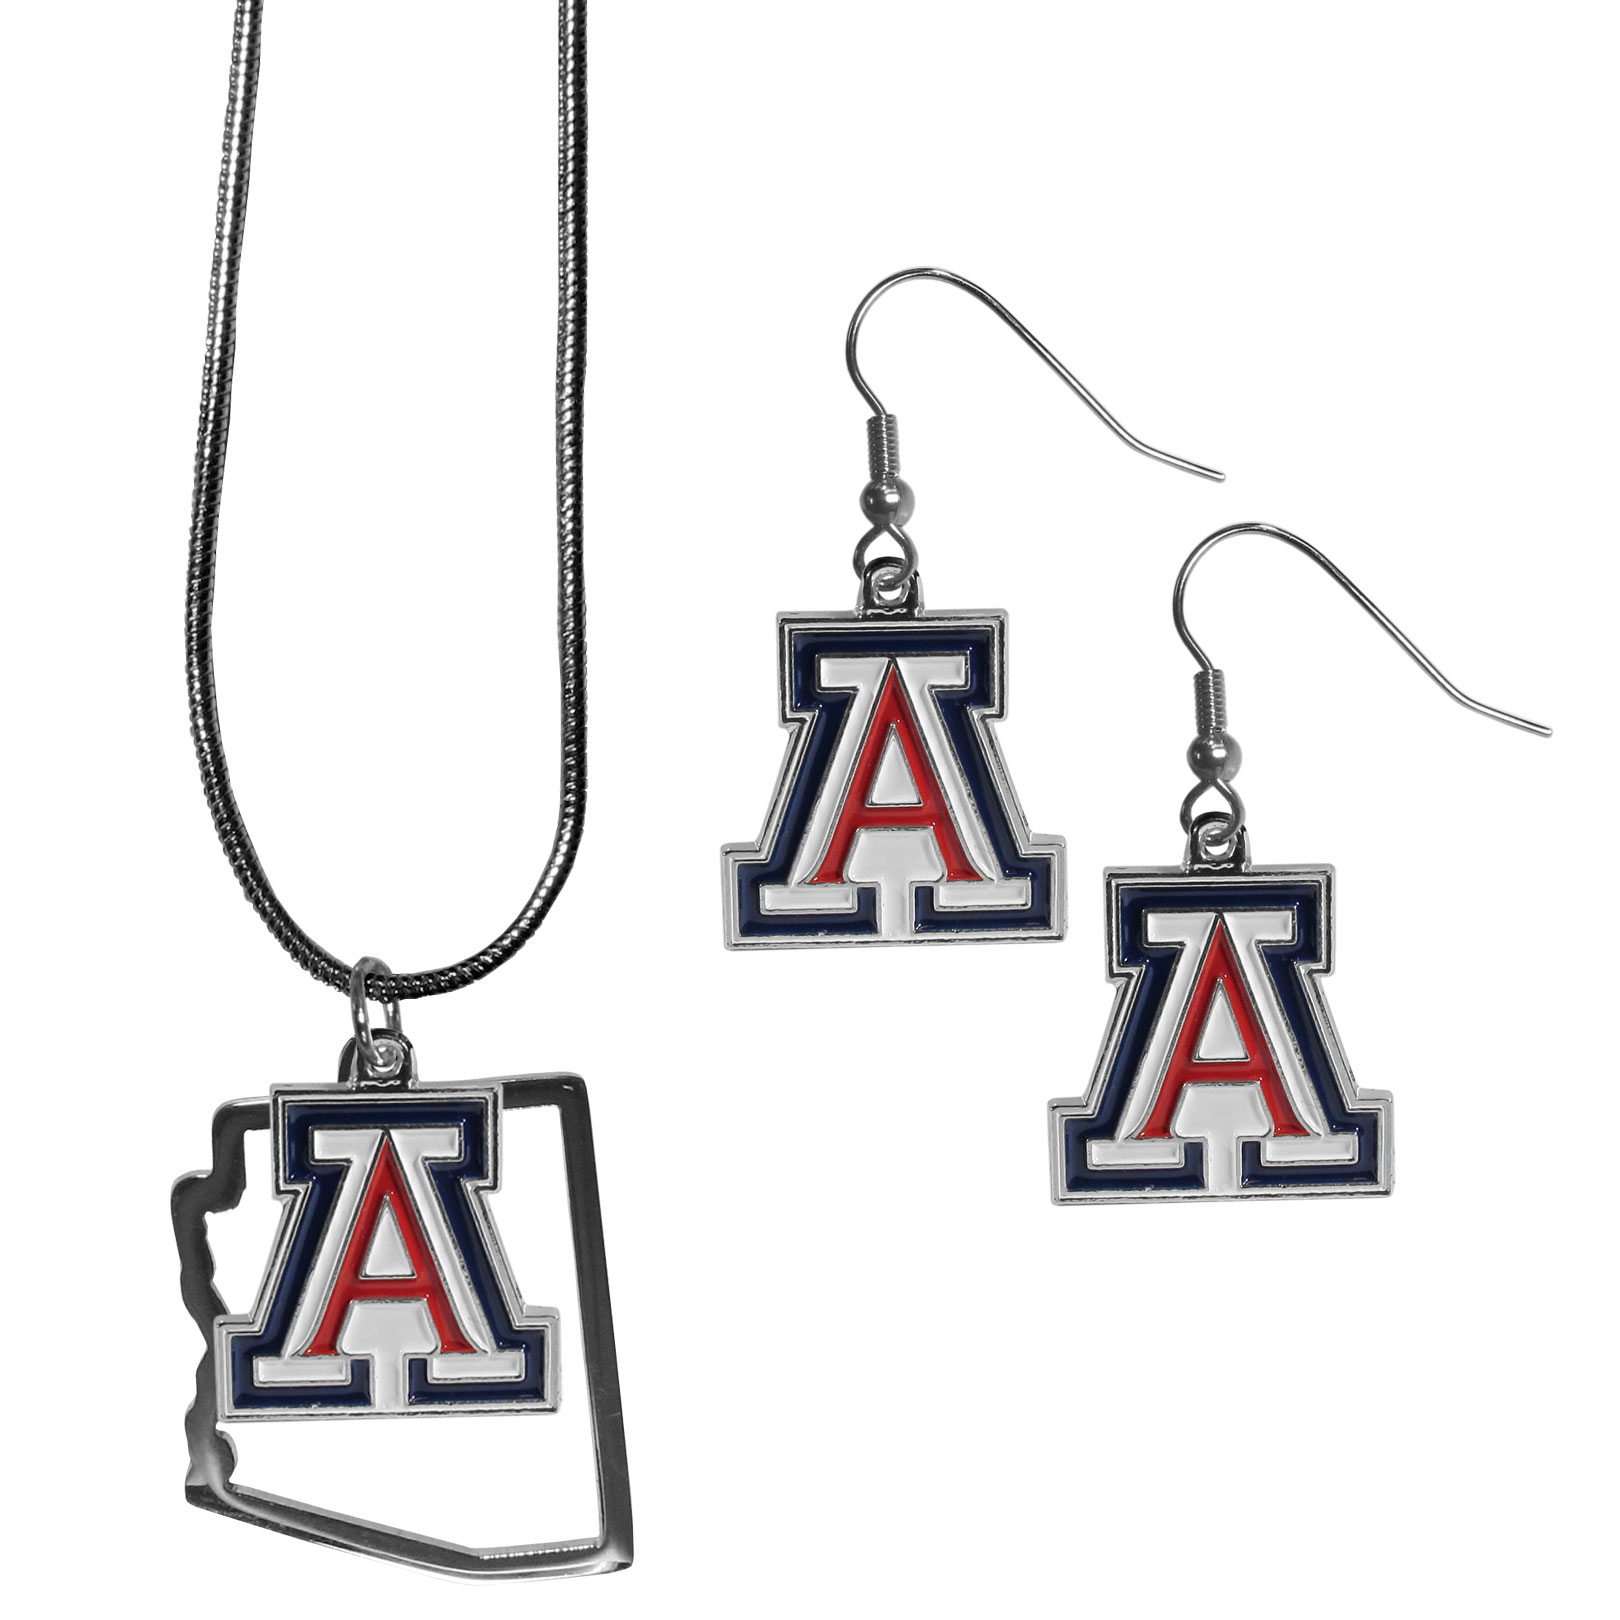 Arizona Wildcats Dangle Earrings and State Necklace Set - Get in on the trend! State themes are a trend that just keeps getting more popular and this jewelry set takes the state style and give it a sporty twist with a Arizona Wildcats necklace that features an Arizona state outline charm paired with a beautiful team charm and matching team charm dangle earrings. The earrings feature hypoallergenic fishhook posts that are nickel free.